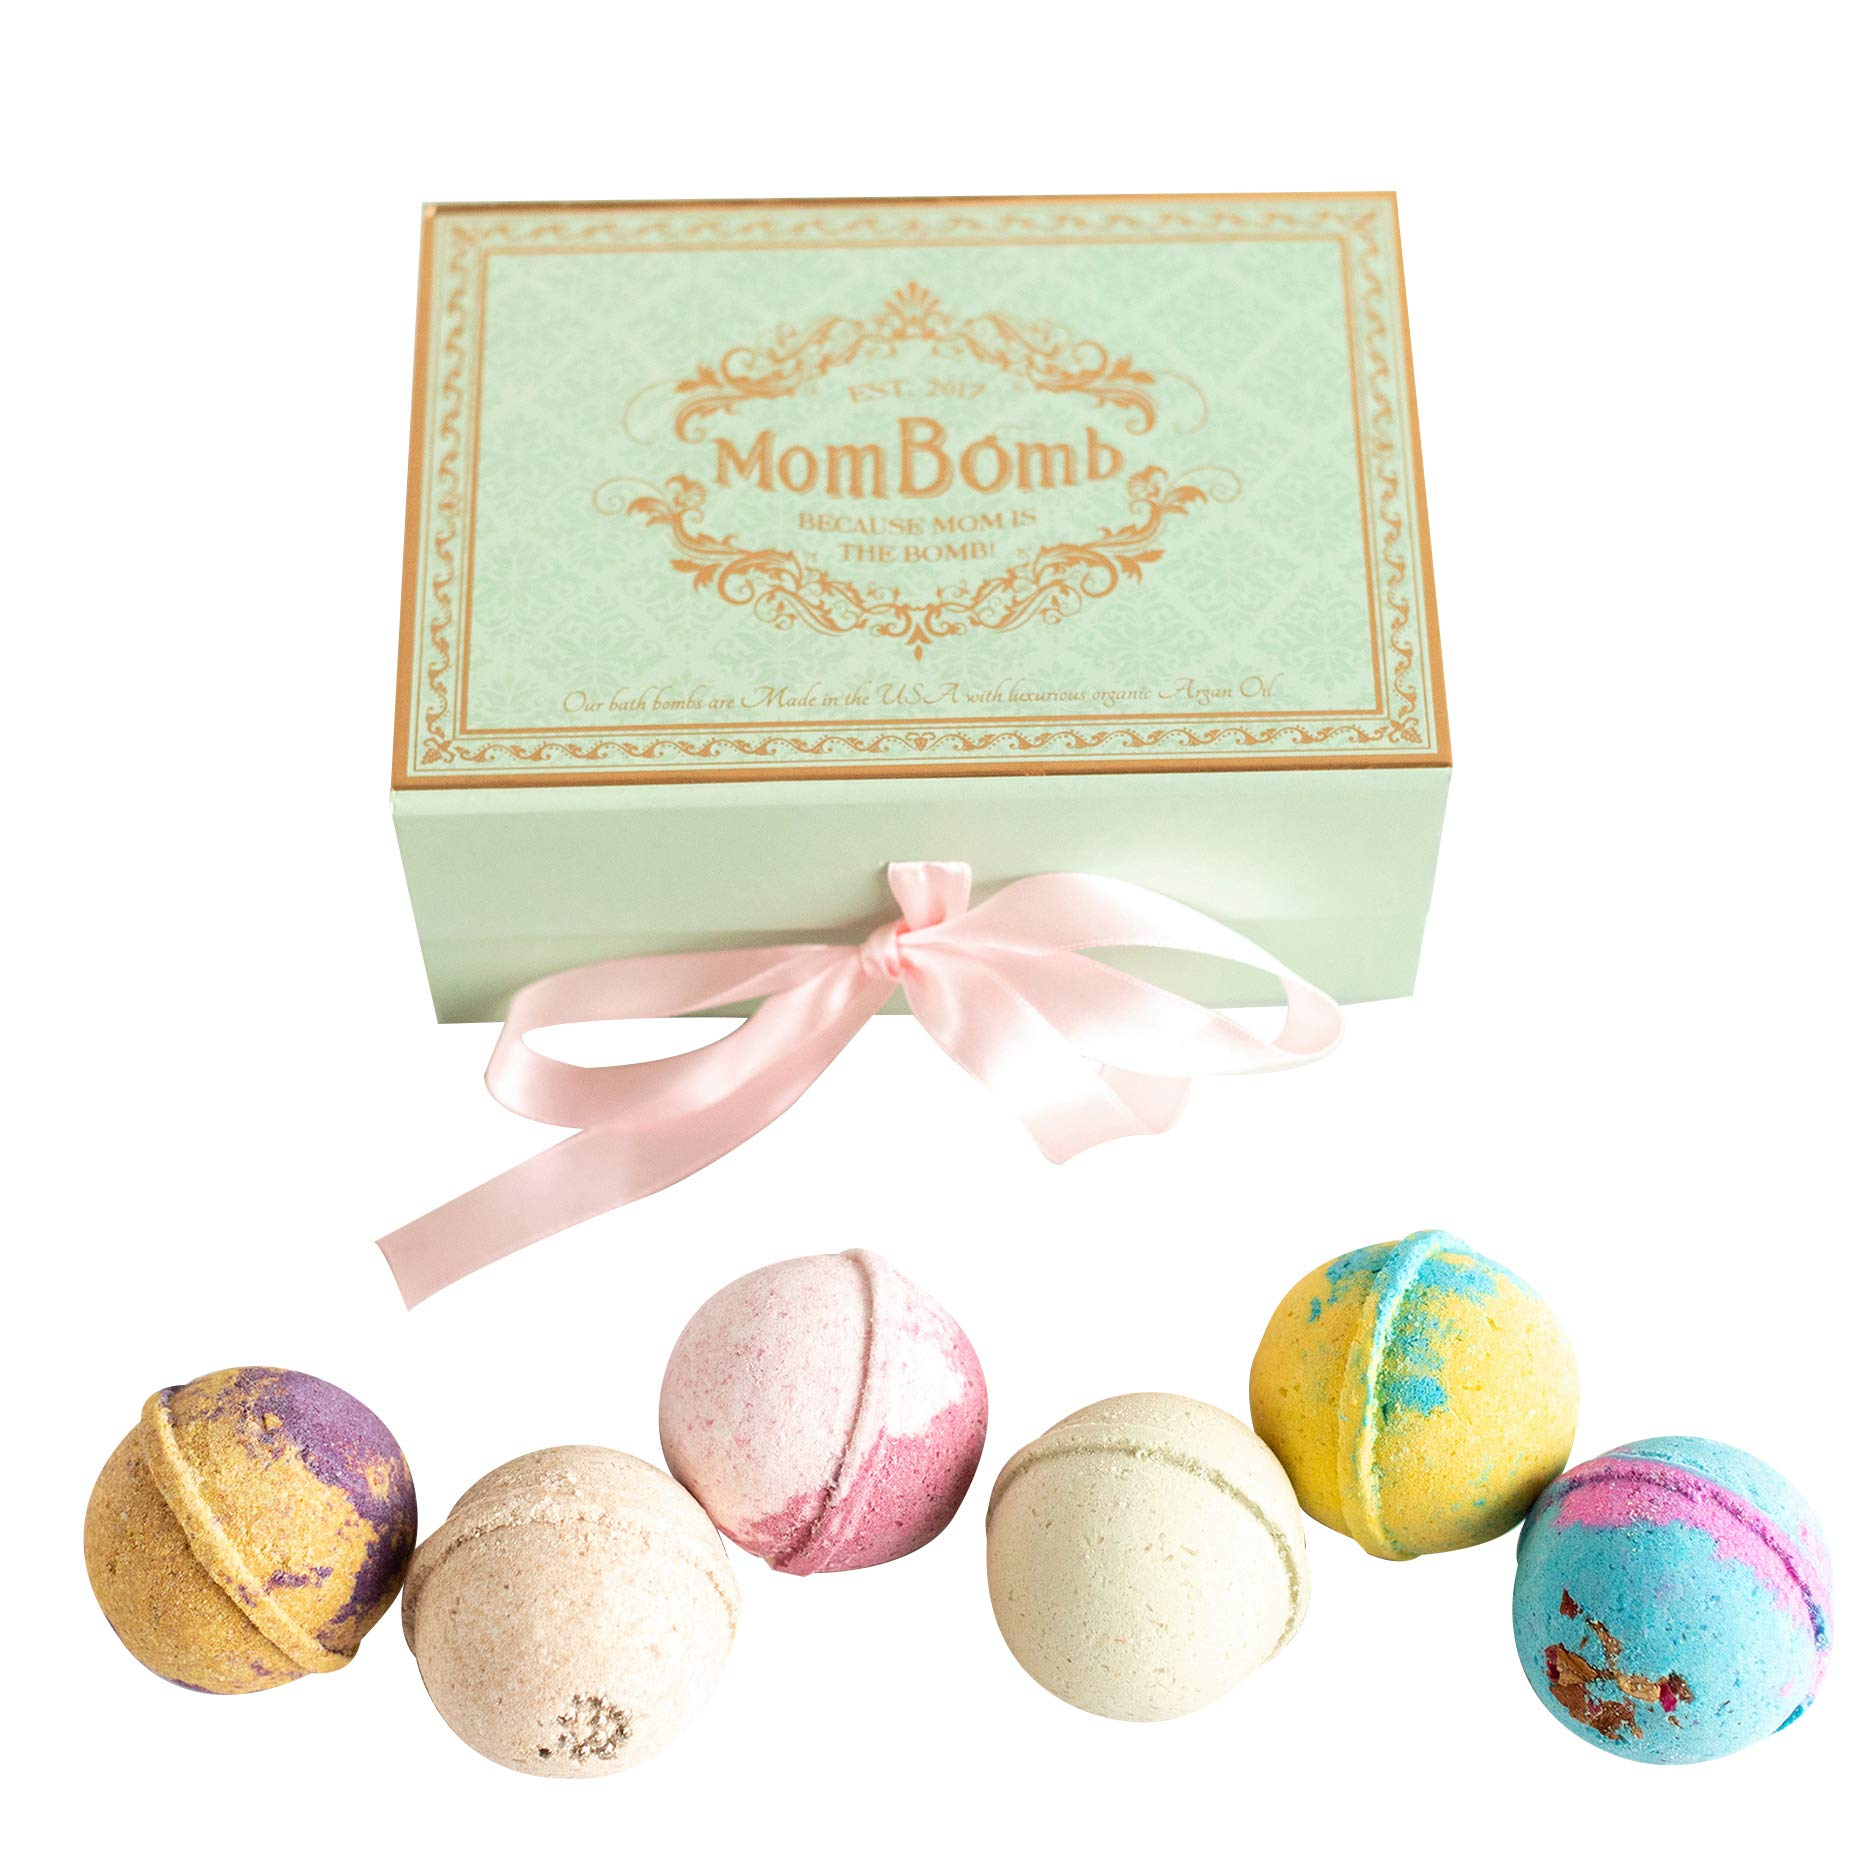 Bath Bomb Gift Set – Each of the 6 aromatherapy bath bombs has a unique fragrance and essential oils, made with organic, natural ingredients. Makes a perfect gift. Proceeds Fund Charity to Help Moms.